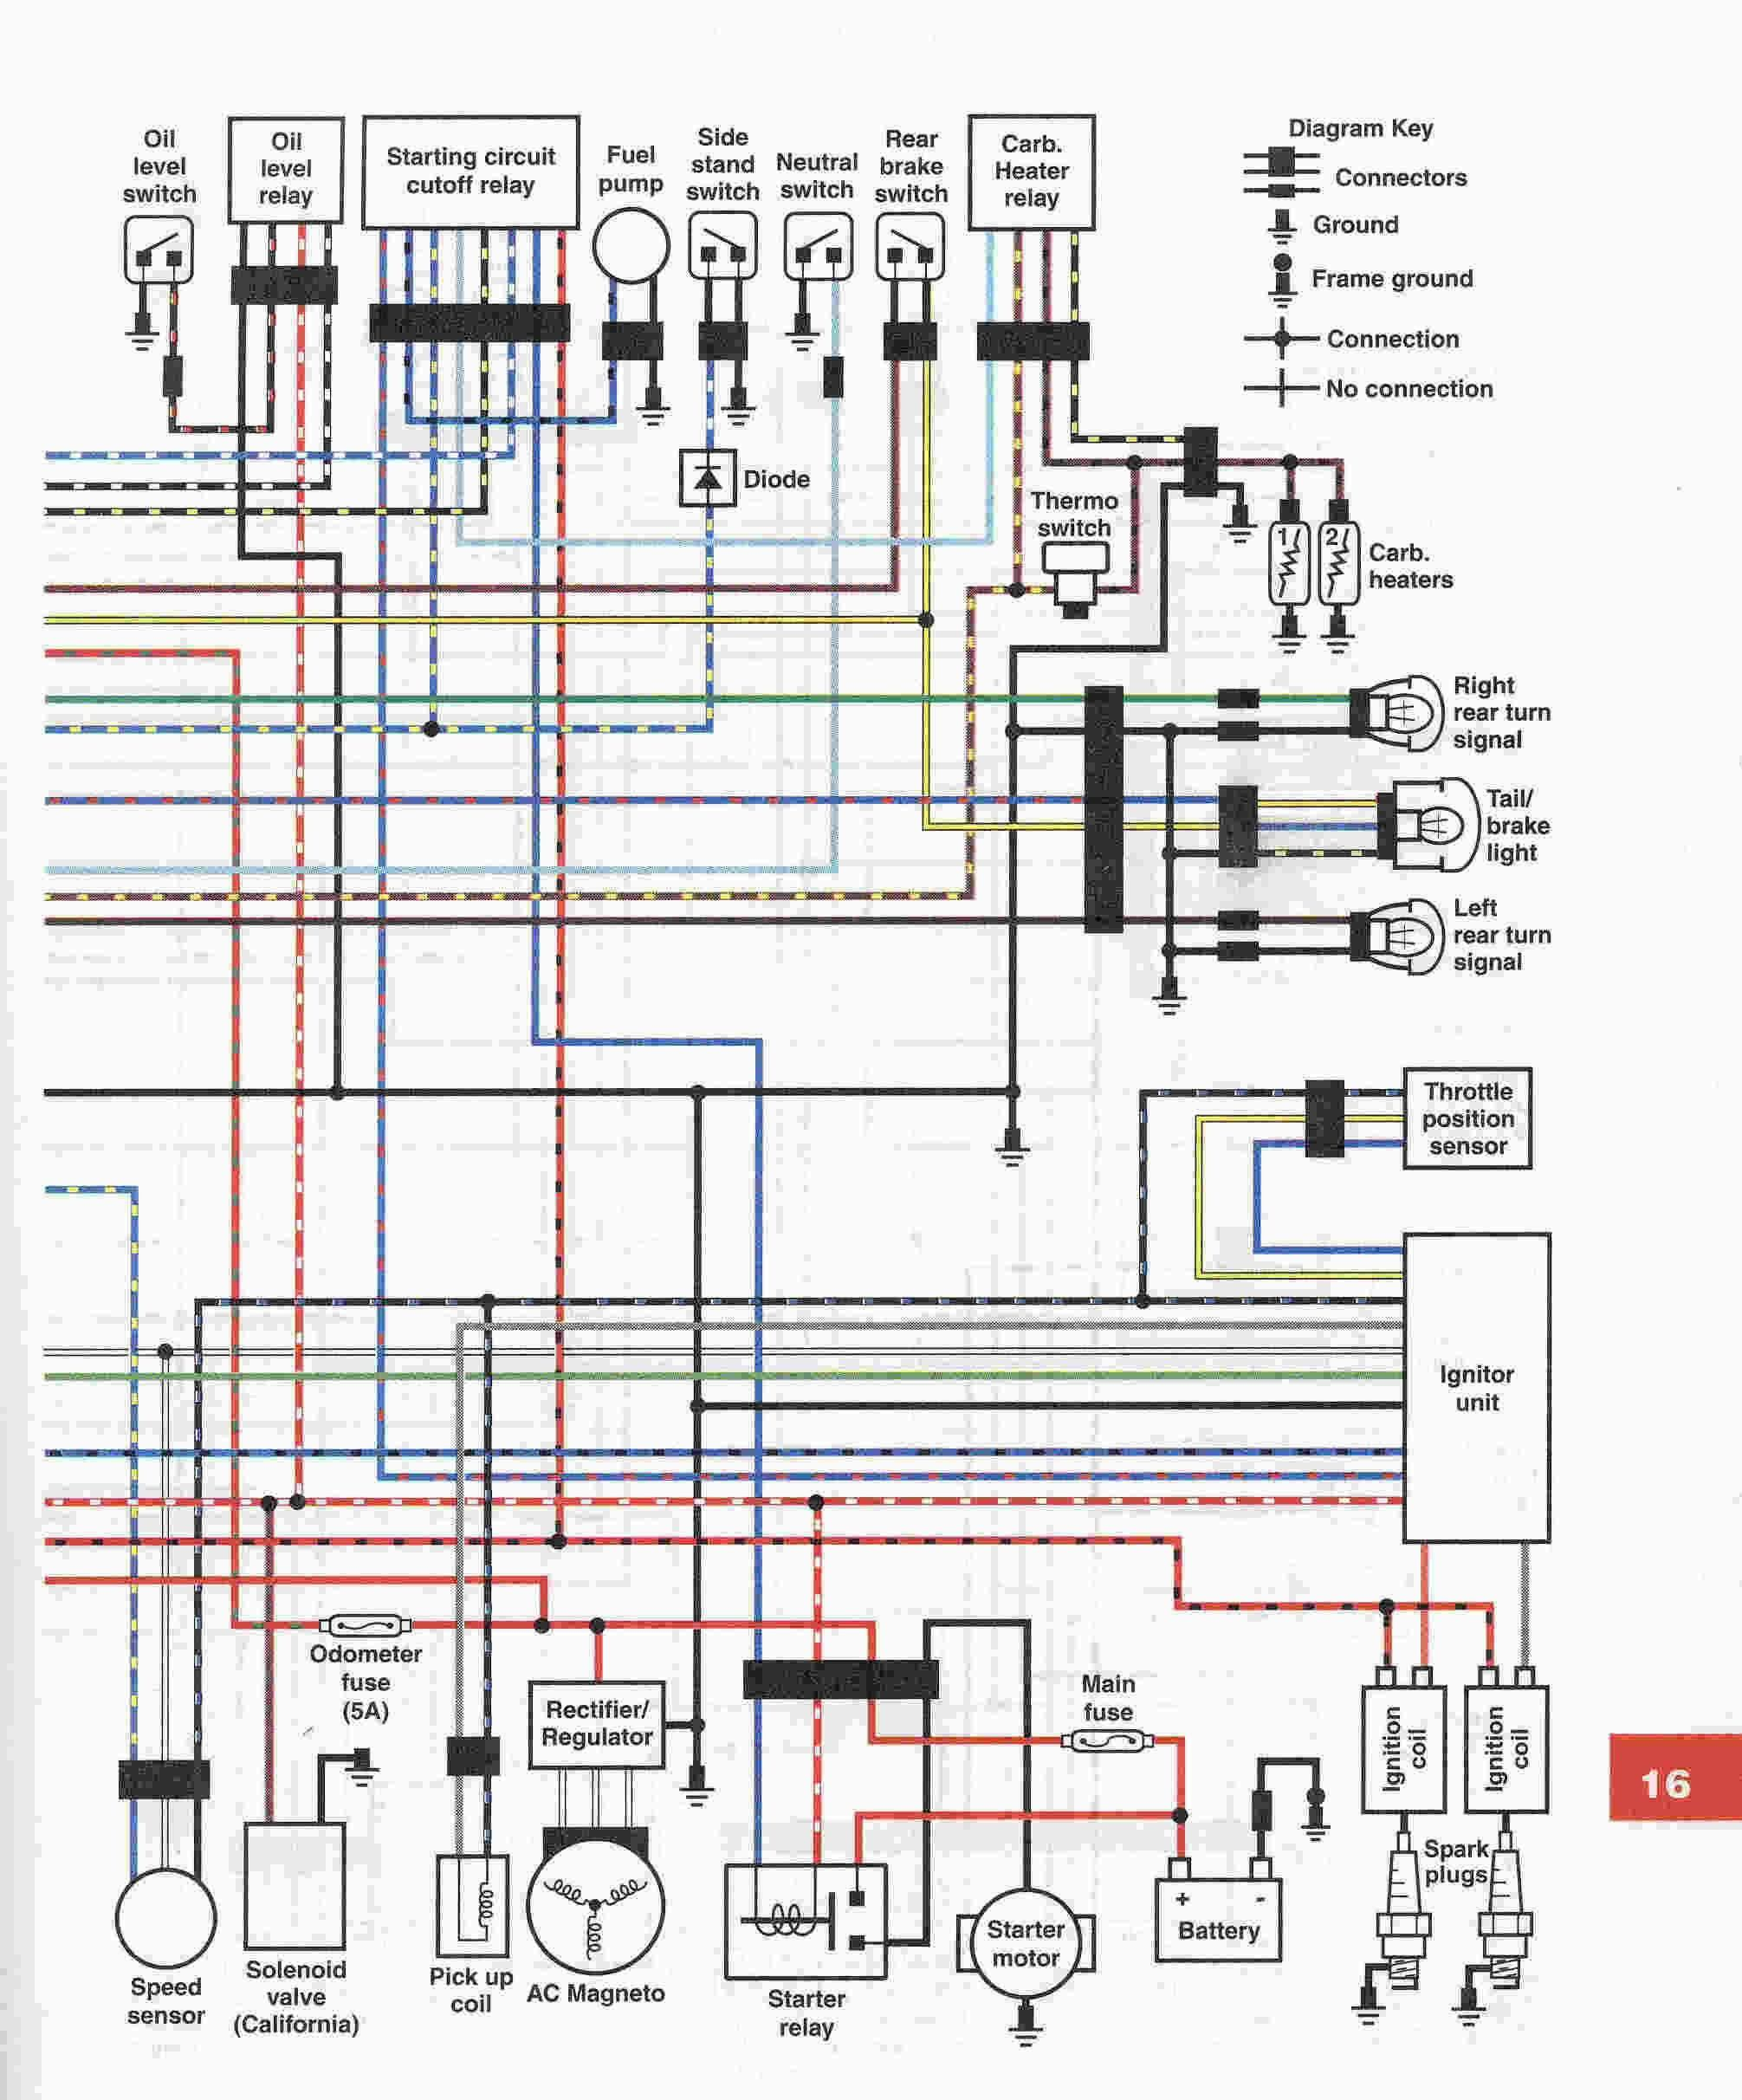 Lovely Wiring Diagram Xs650 Diagrams Digramssample Diagramimages Diagrama De Circuito Electrico Diagrama De Circuito Circuito Electrico